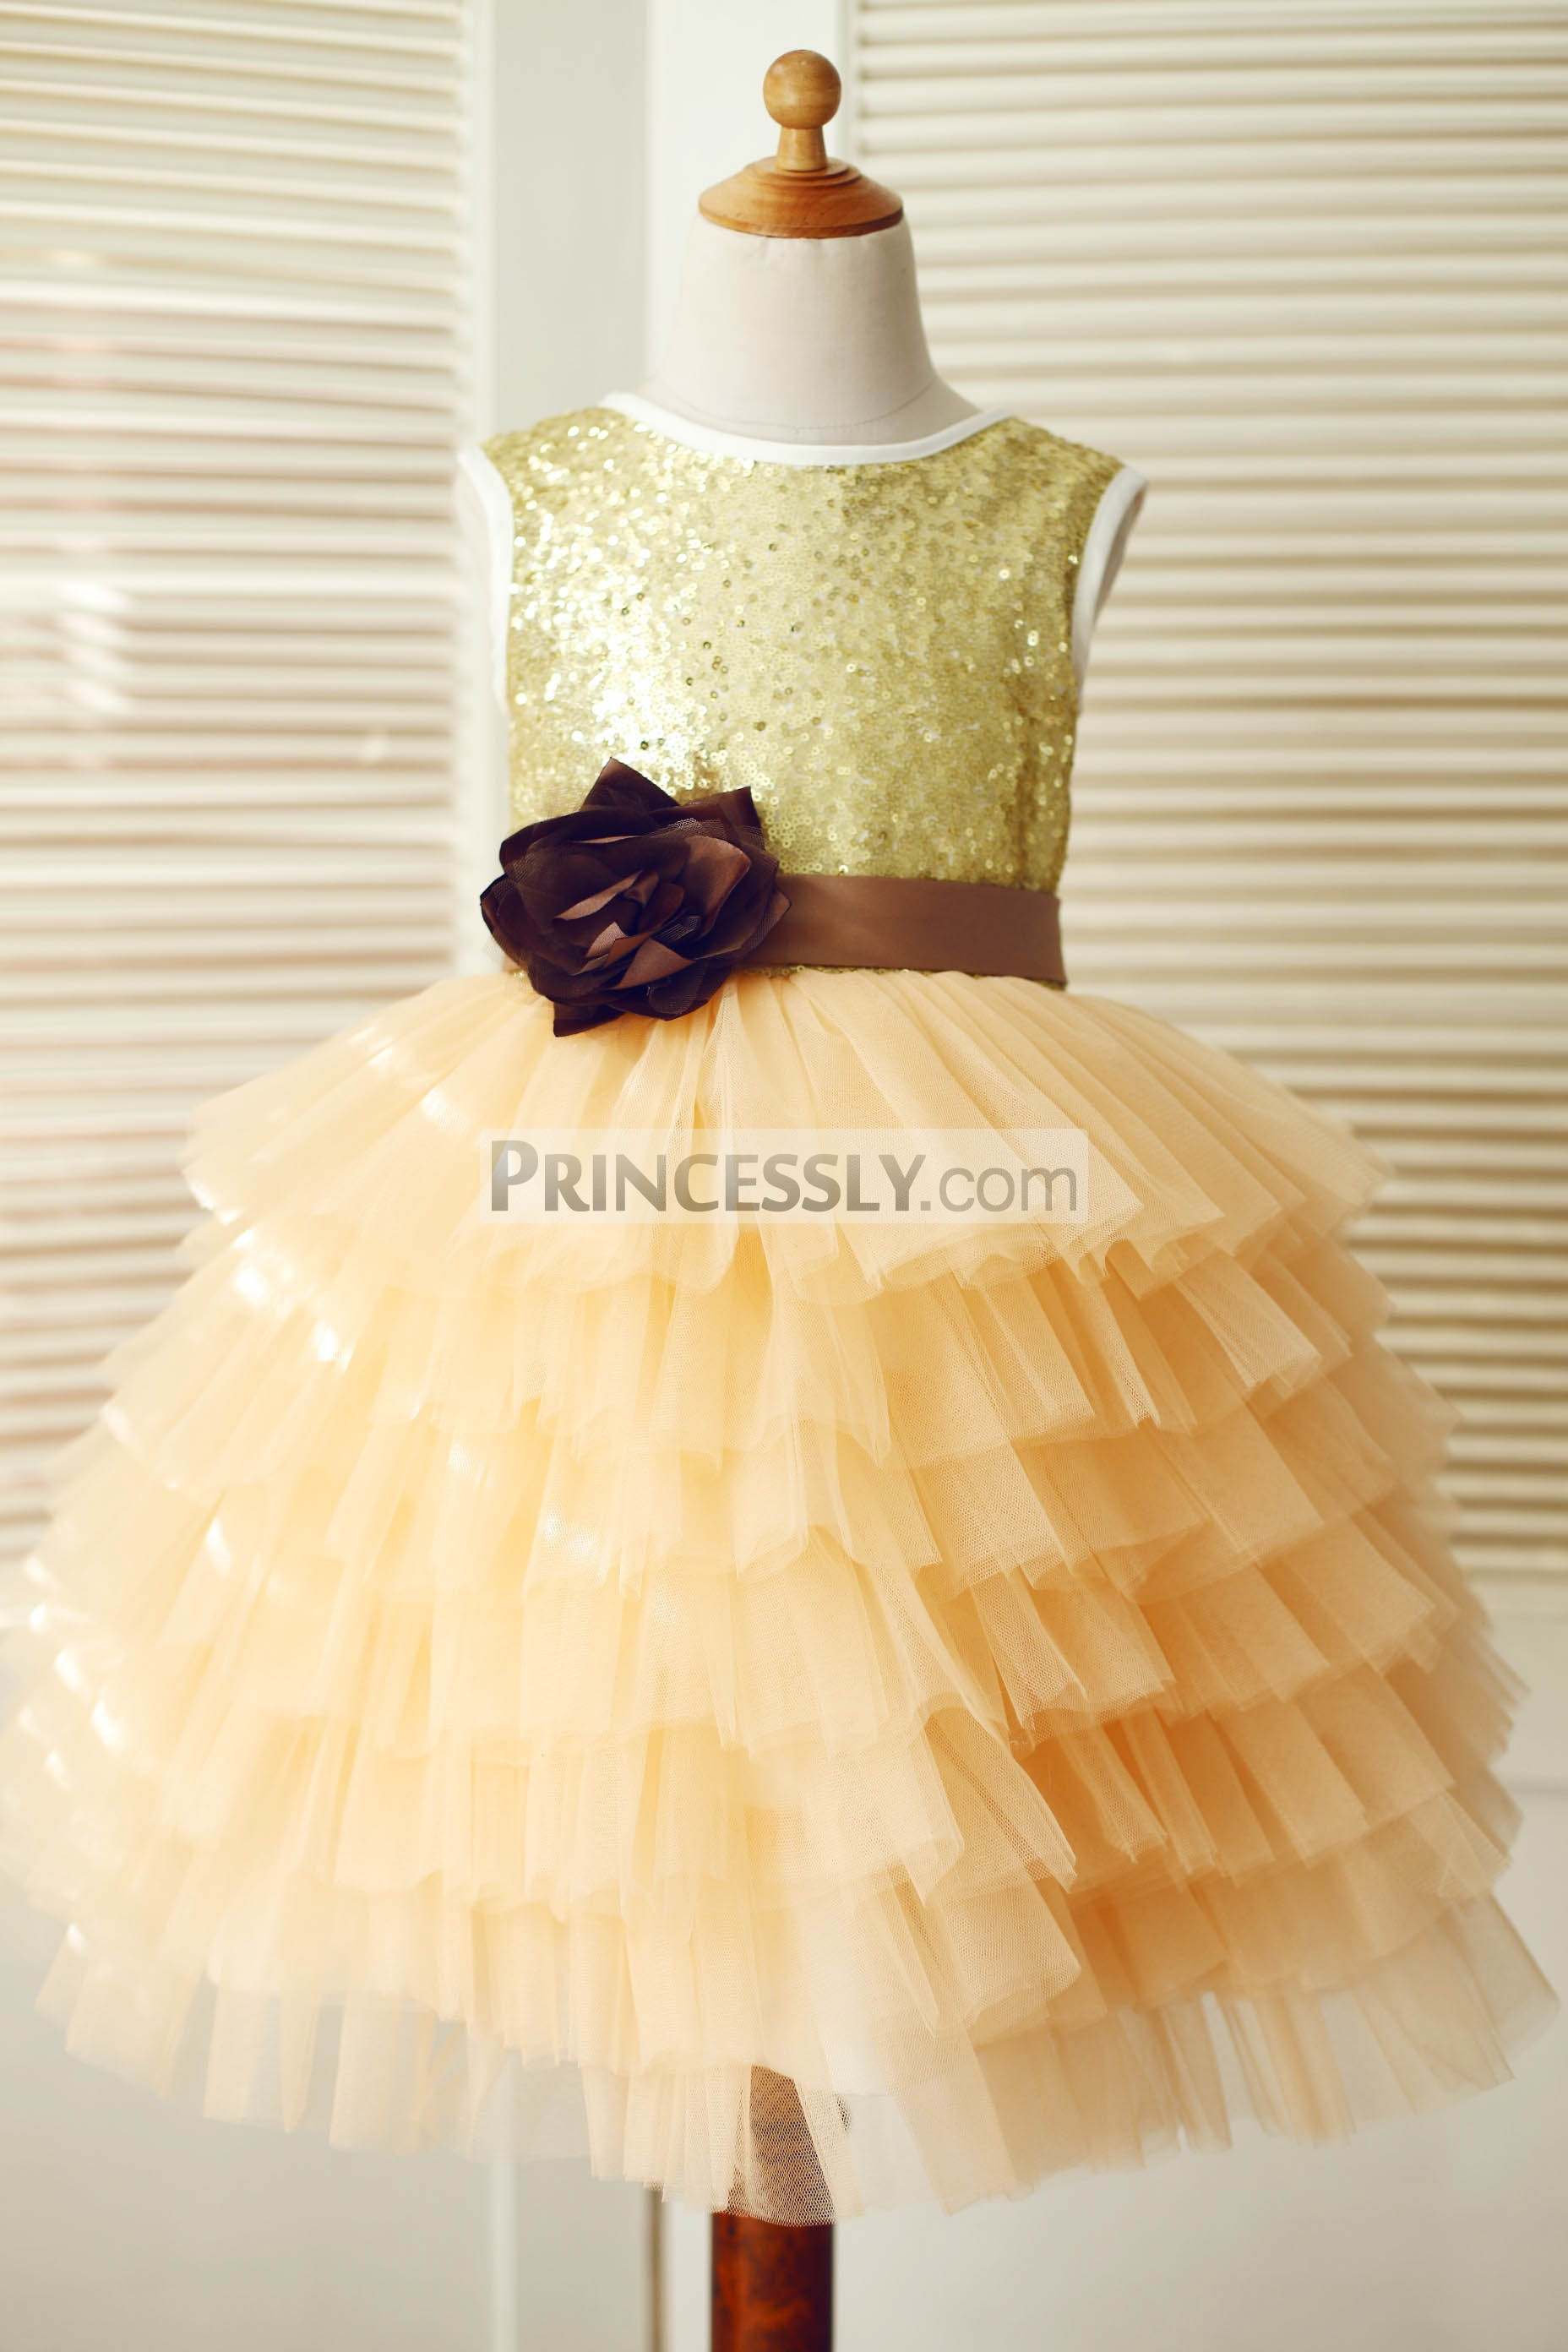 7f690afa966 Gold sequin champagne tulle cupcake flower girl dress. Gold sequins tulle  skirt wedding baby girl dress with sash